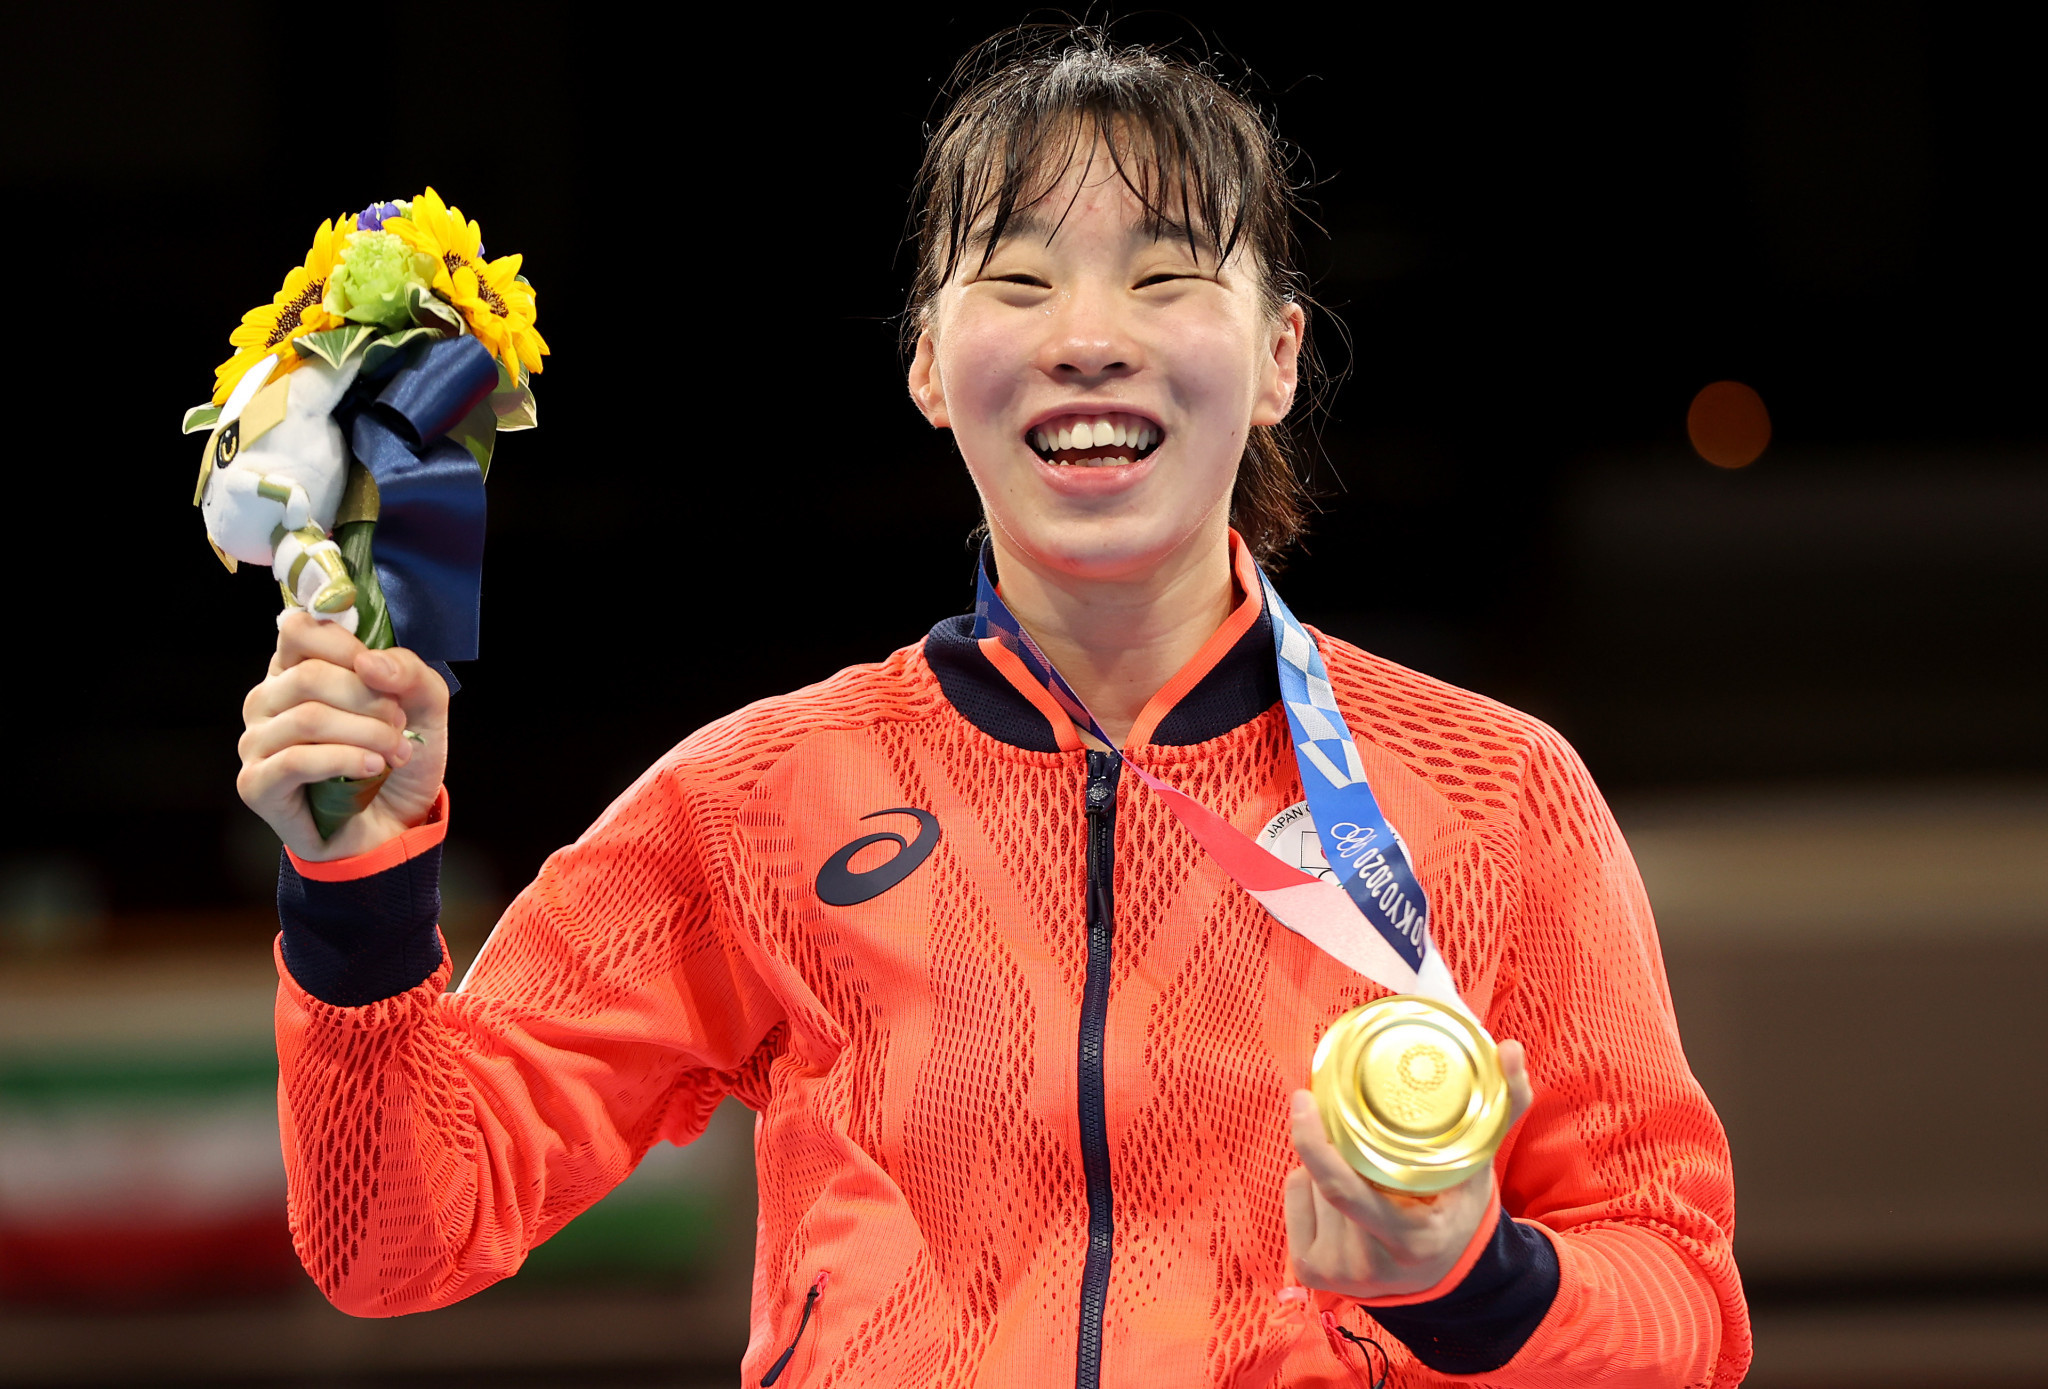 Japan's Sena Irie became the first Olympic champion crowned under the IOC Boxing Task Force, winning the women's featherweight division ©Getty Images